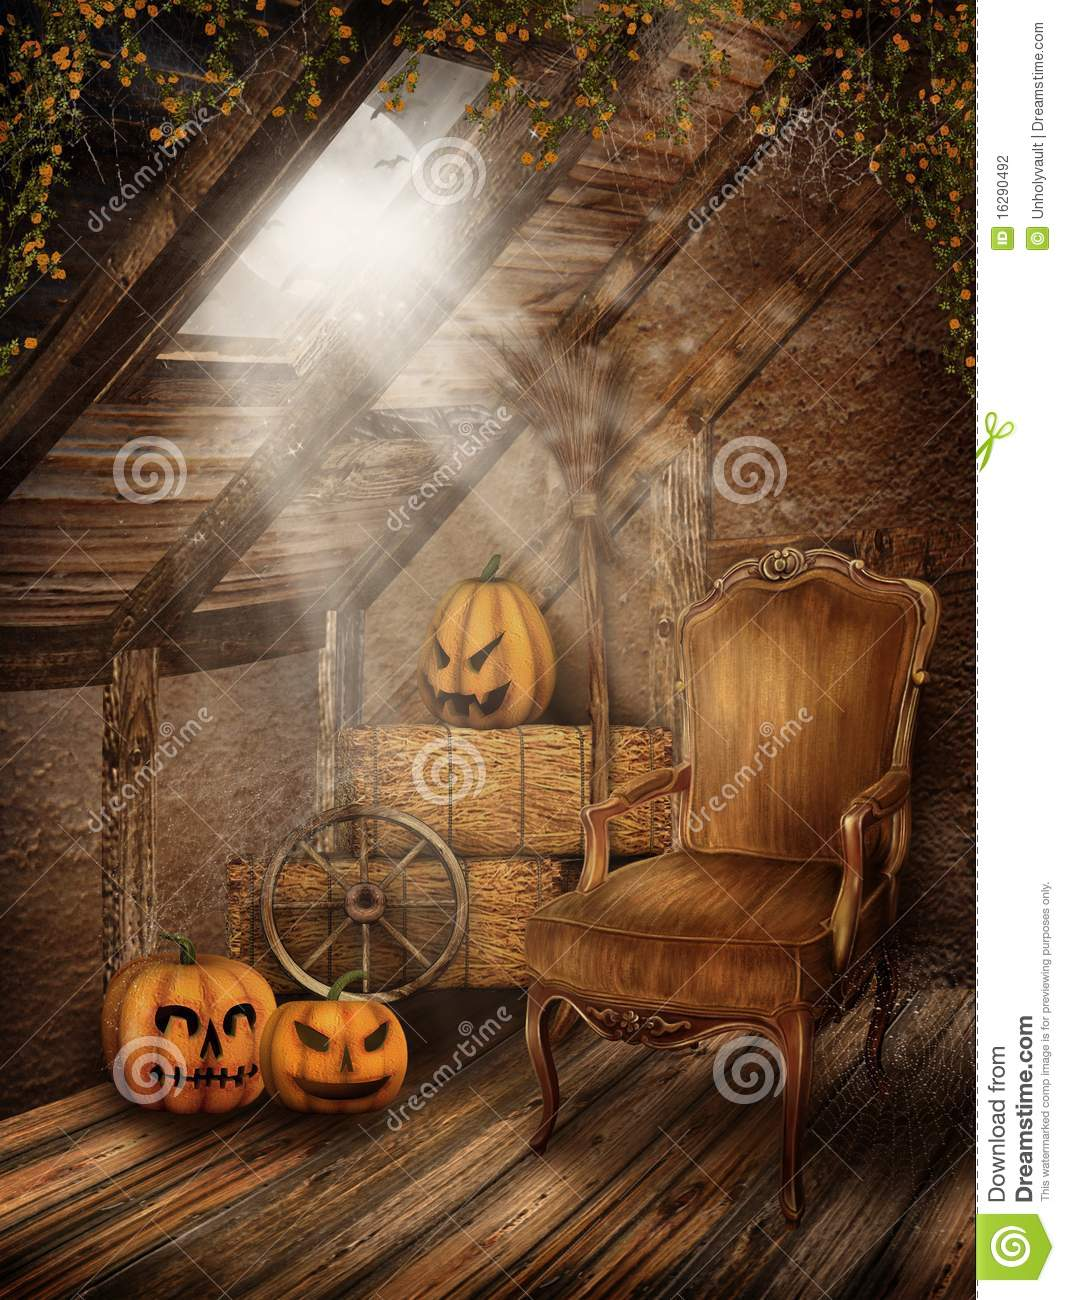 Halloween Window Decorations: Attic Room With Halloween Decorations Stock Illustration